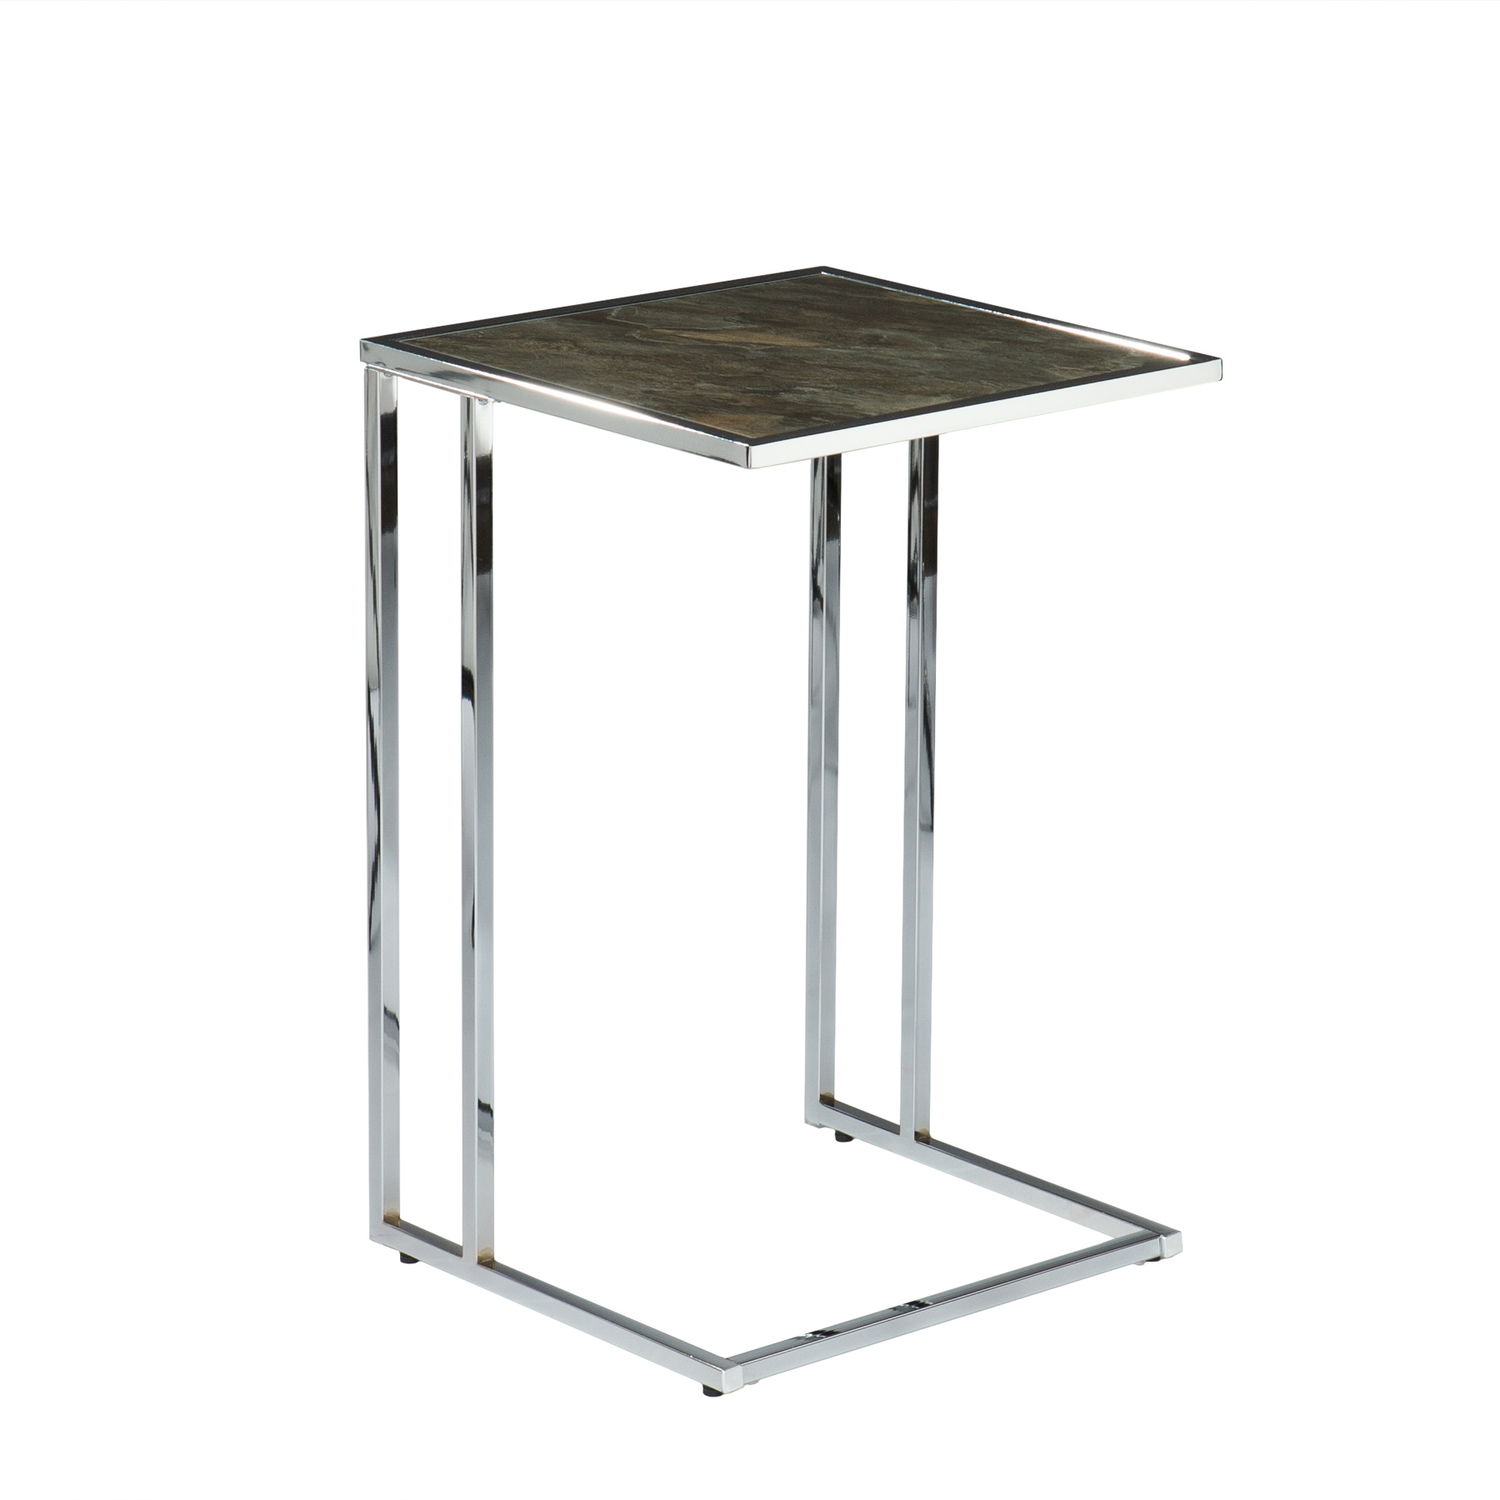 Southern enterprises sofa server accent table marble by oj Sofa side table